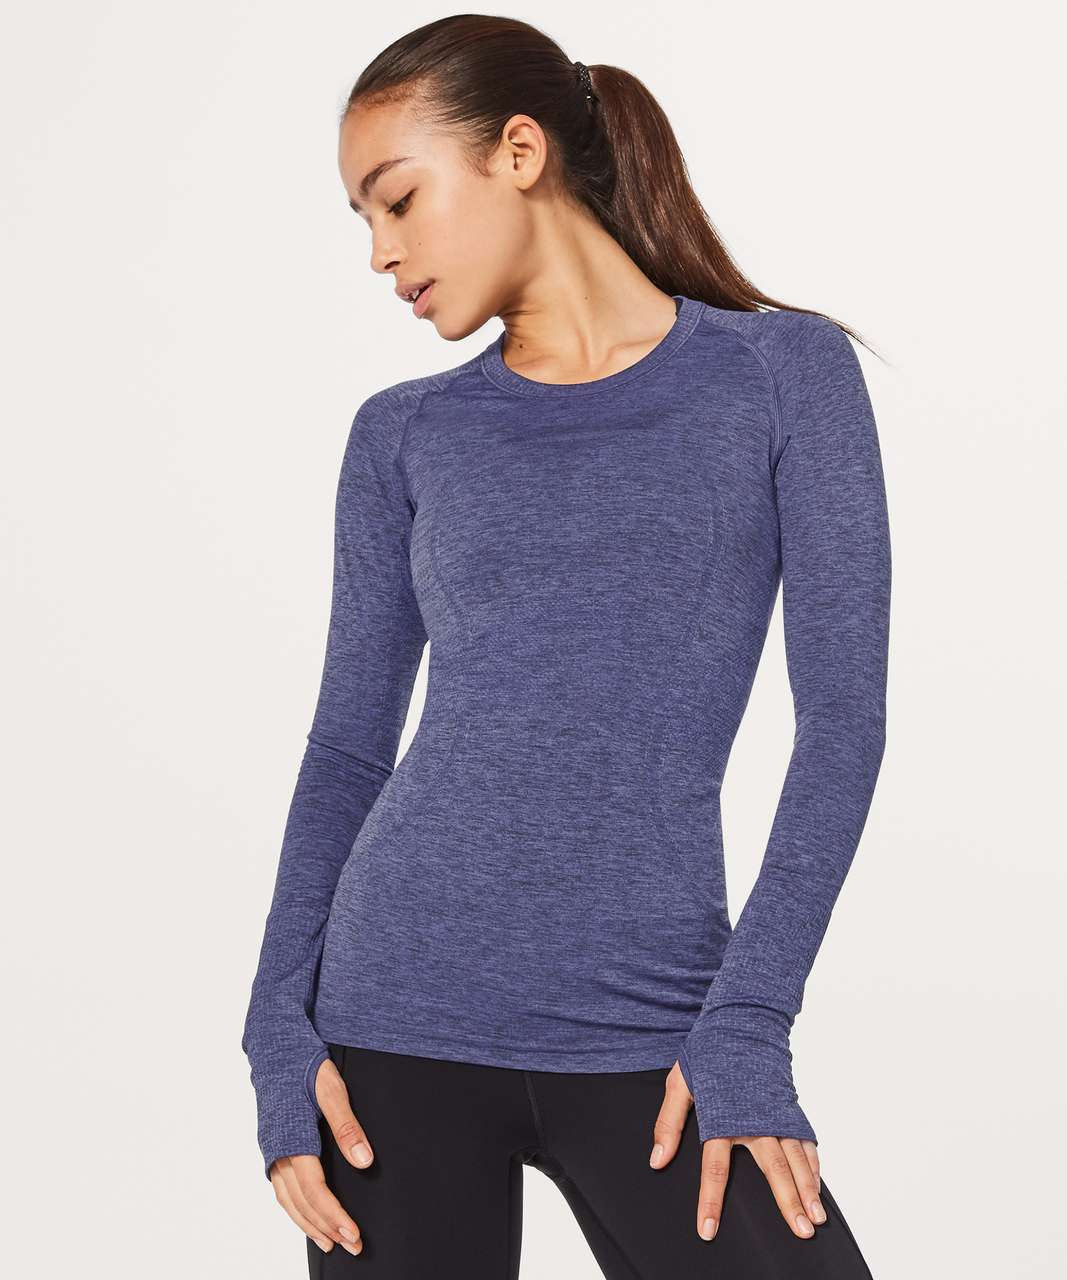 Lululemon Swiftly Tech Long Sleeve Crew - Stony Grape / Black